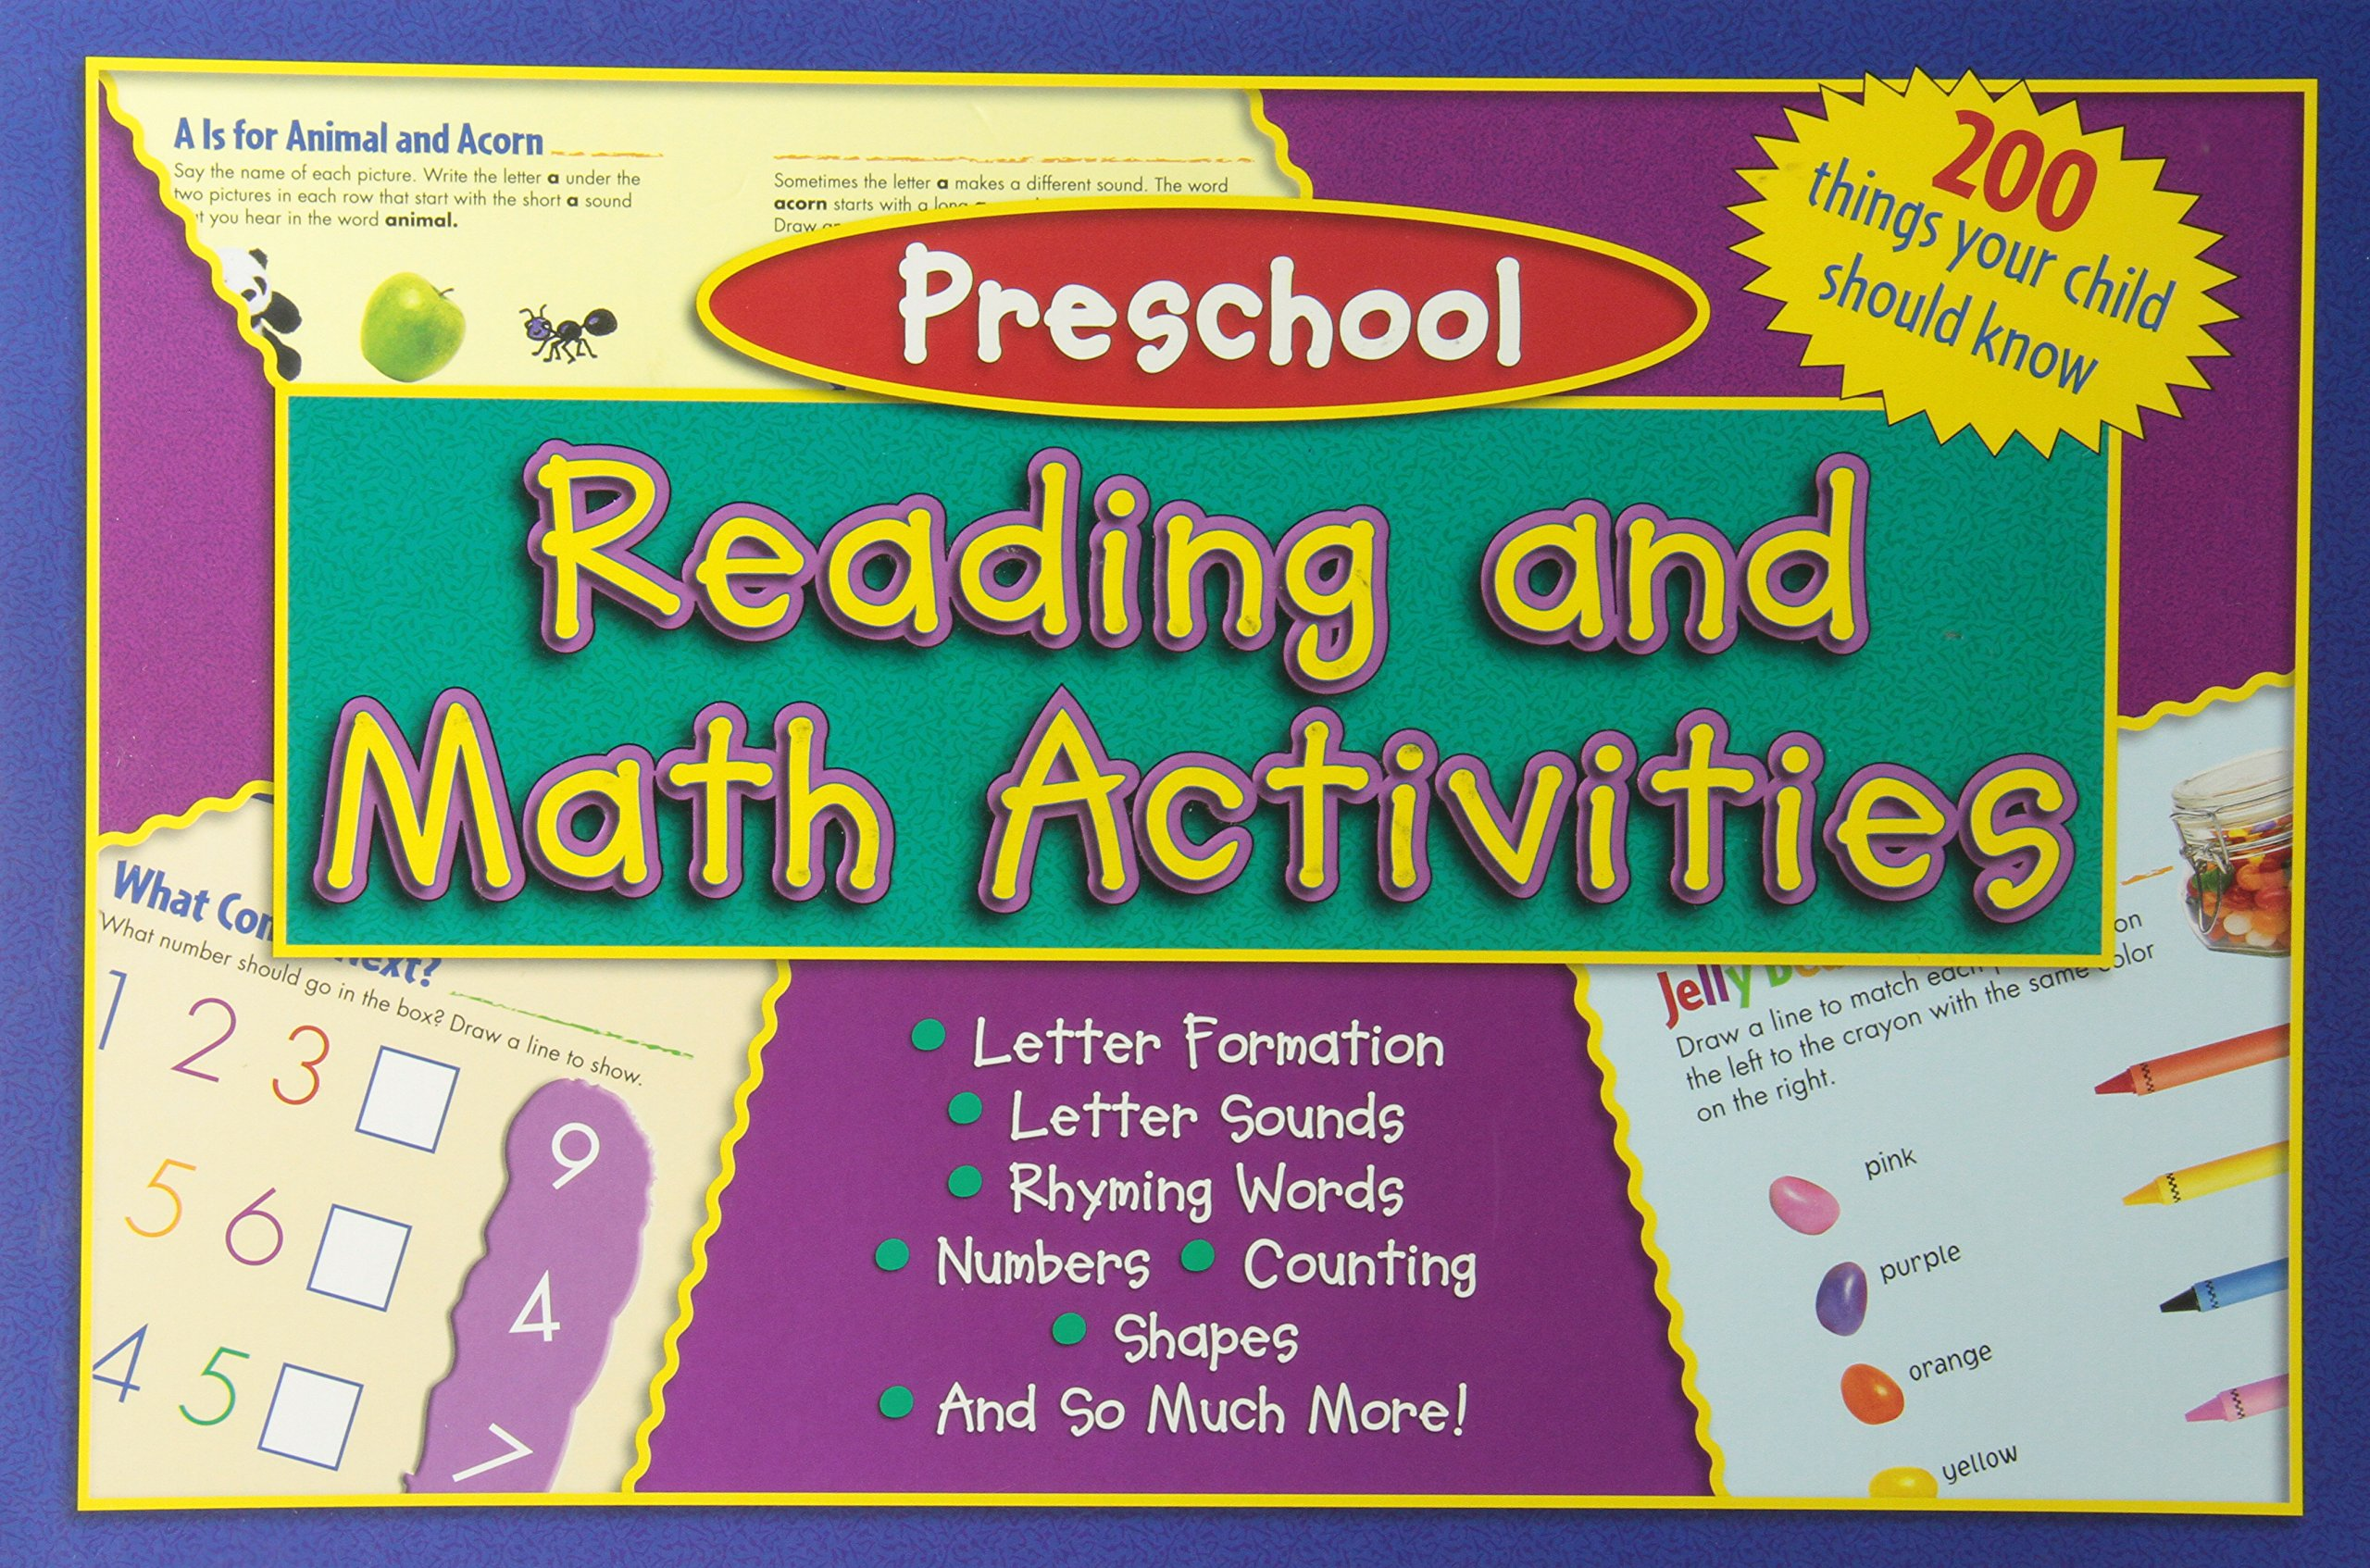 rhymes for letter formation ebook